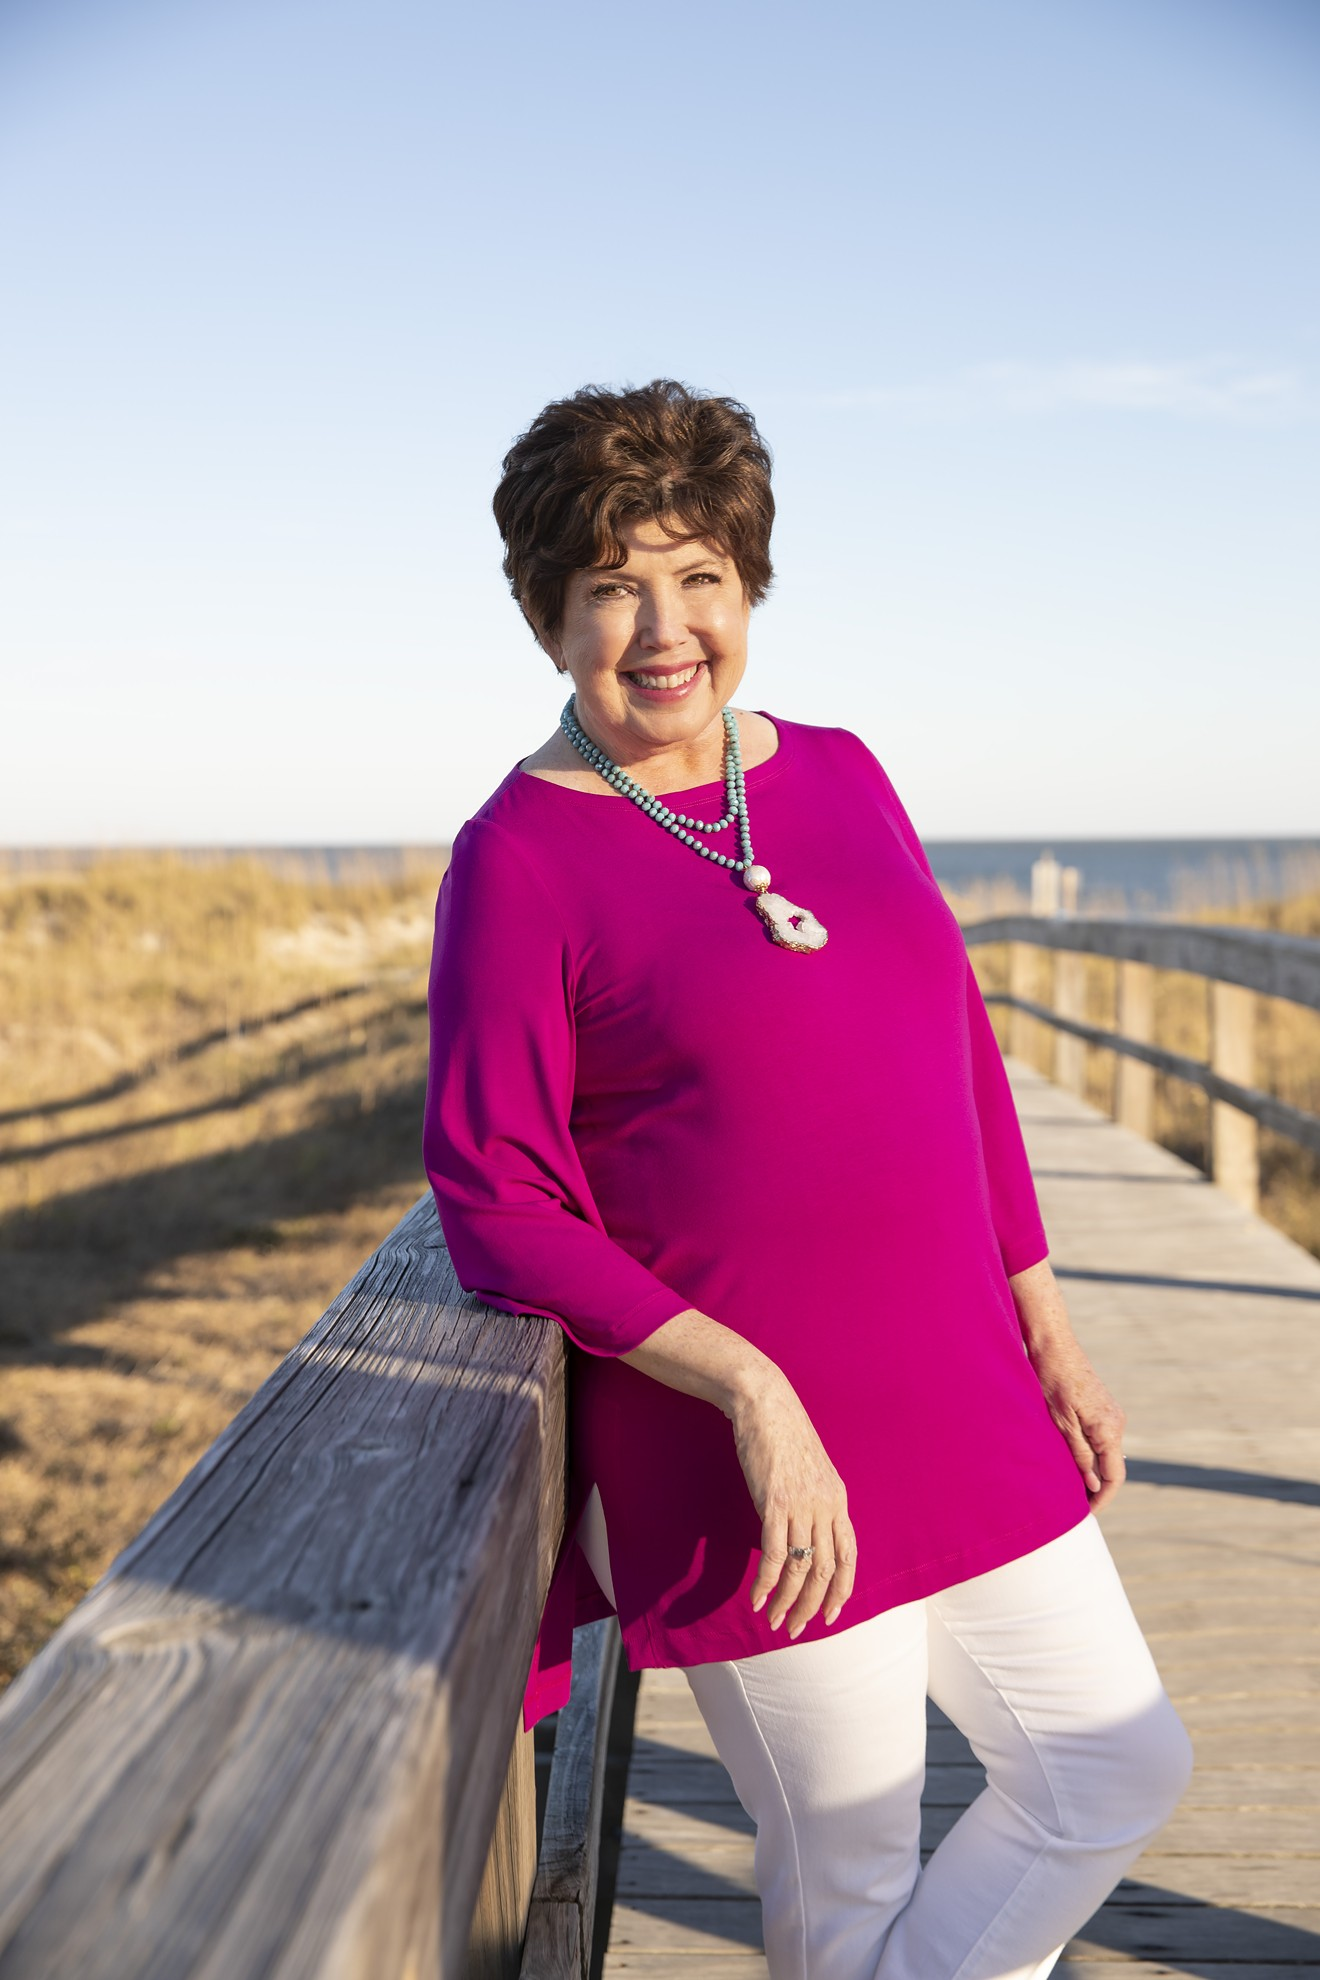 Mary Kay Andrews prepares for her latest book tour